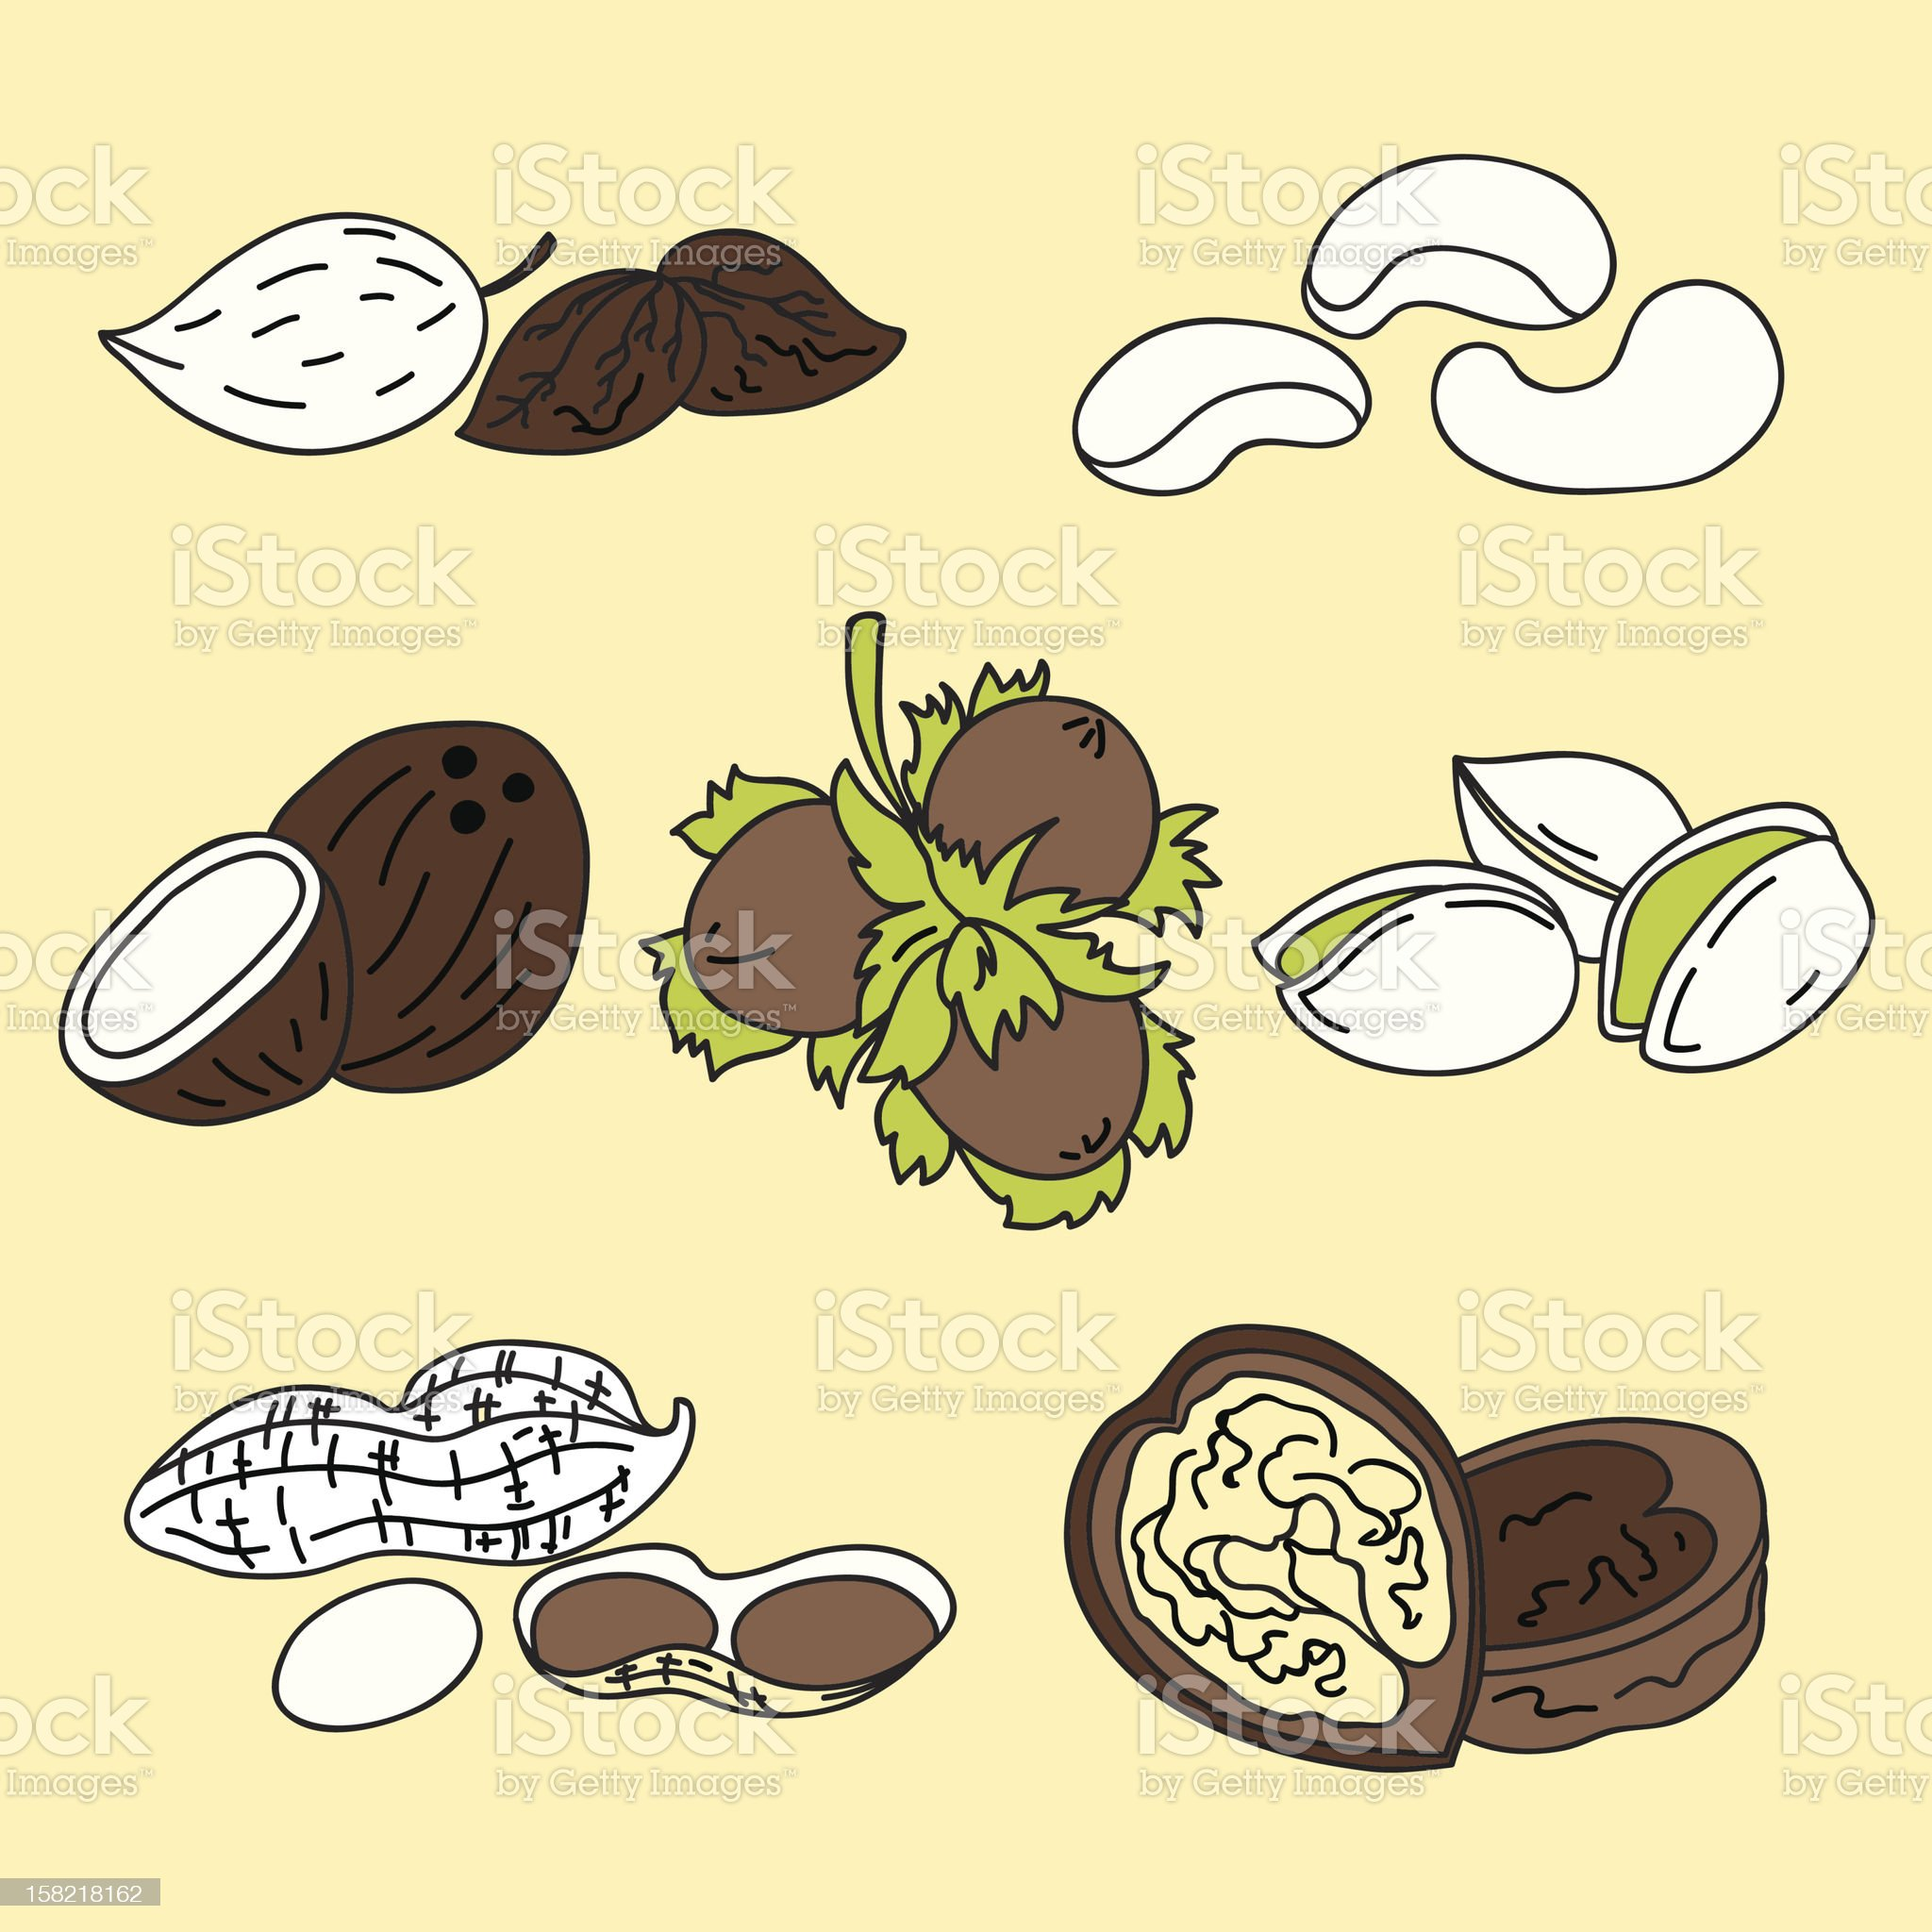 Nuts icons royalty-free stock vector art